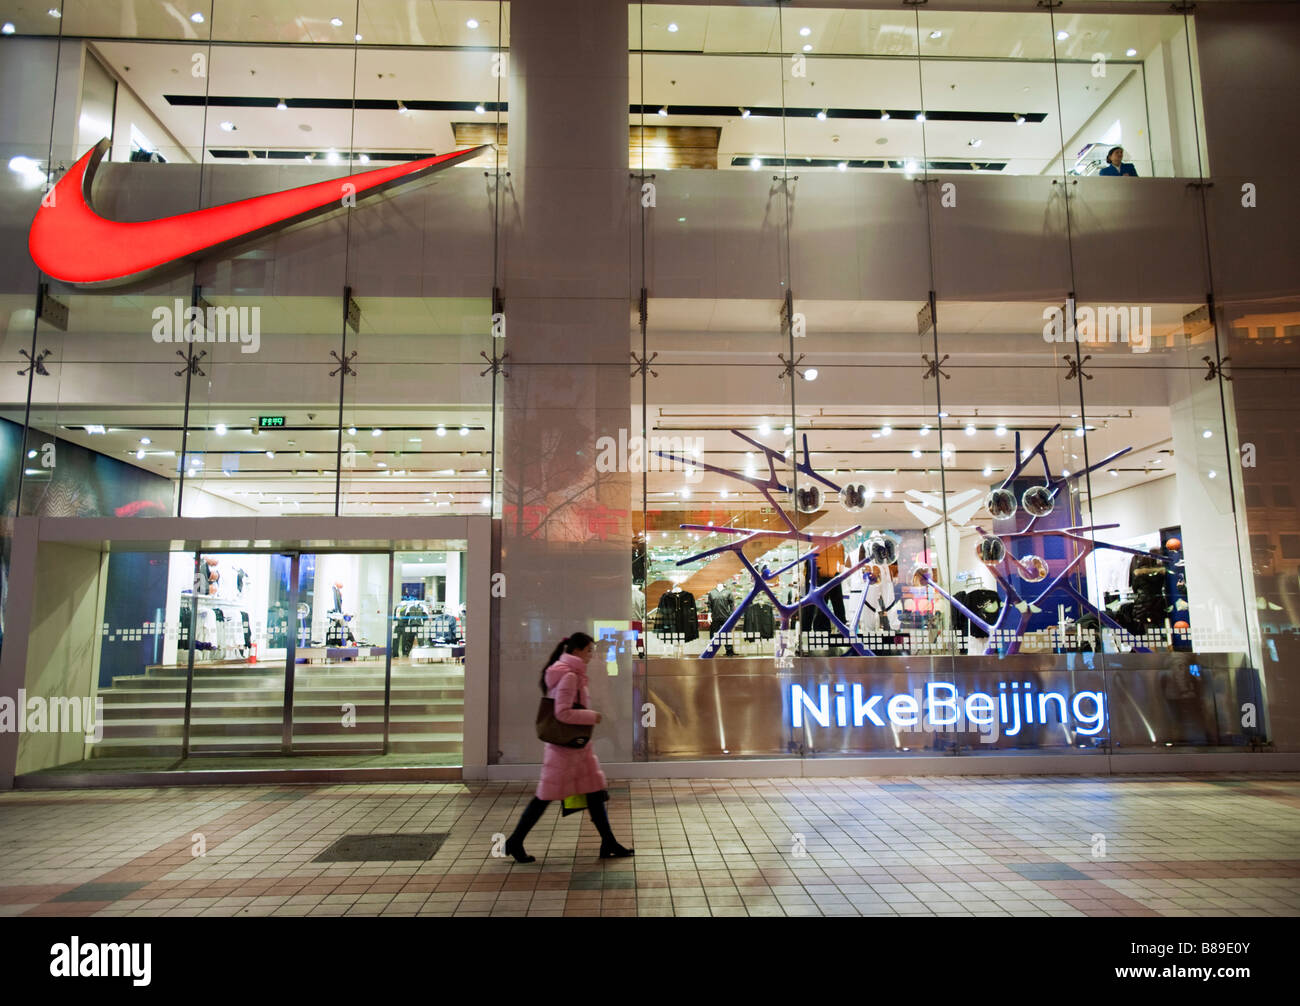 Exterior Night View Of Flagship Nike Store On Wangfujing Street In Central Beijing